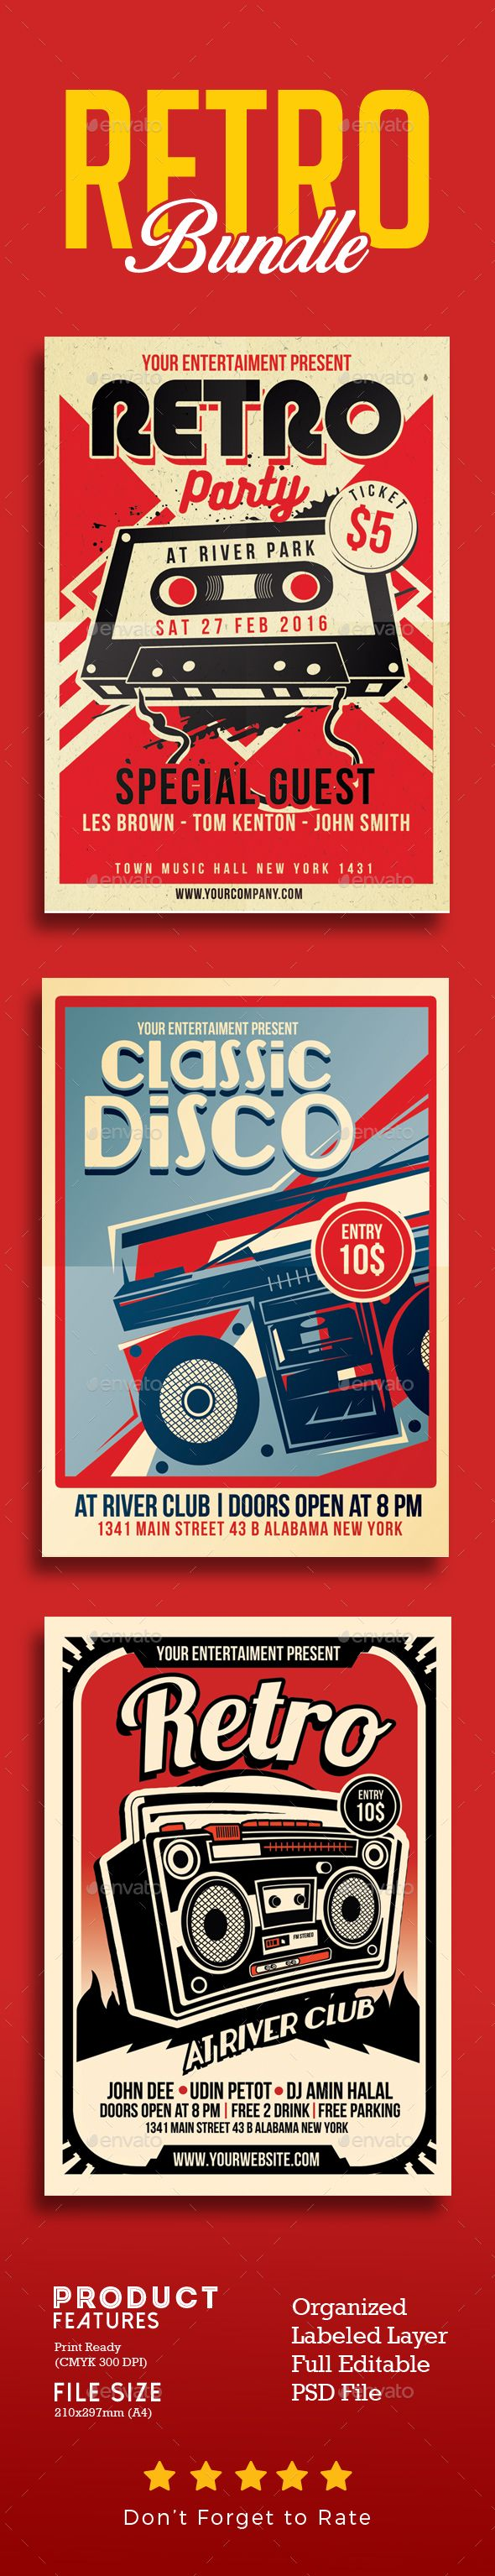 Retro Music Flyer Template PSD Bundle